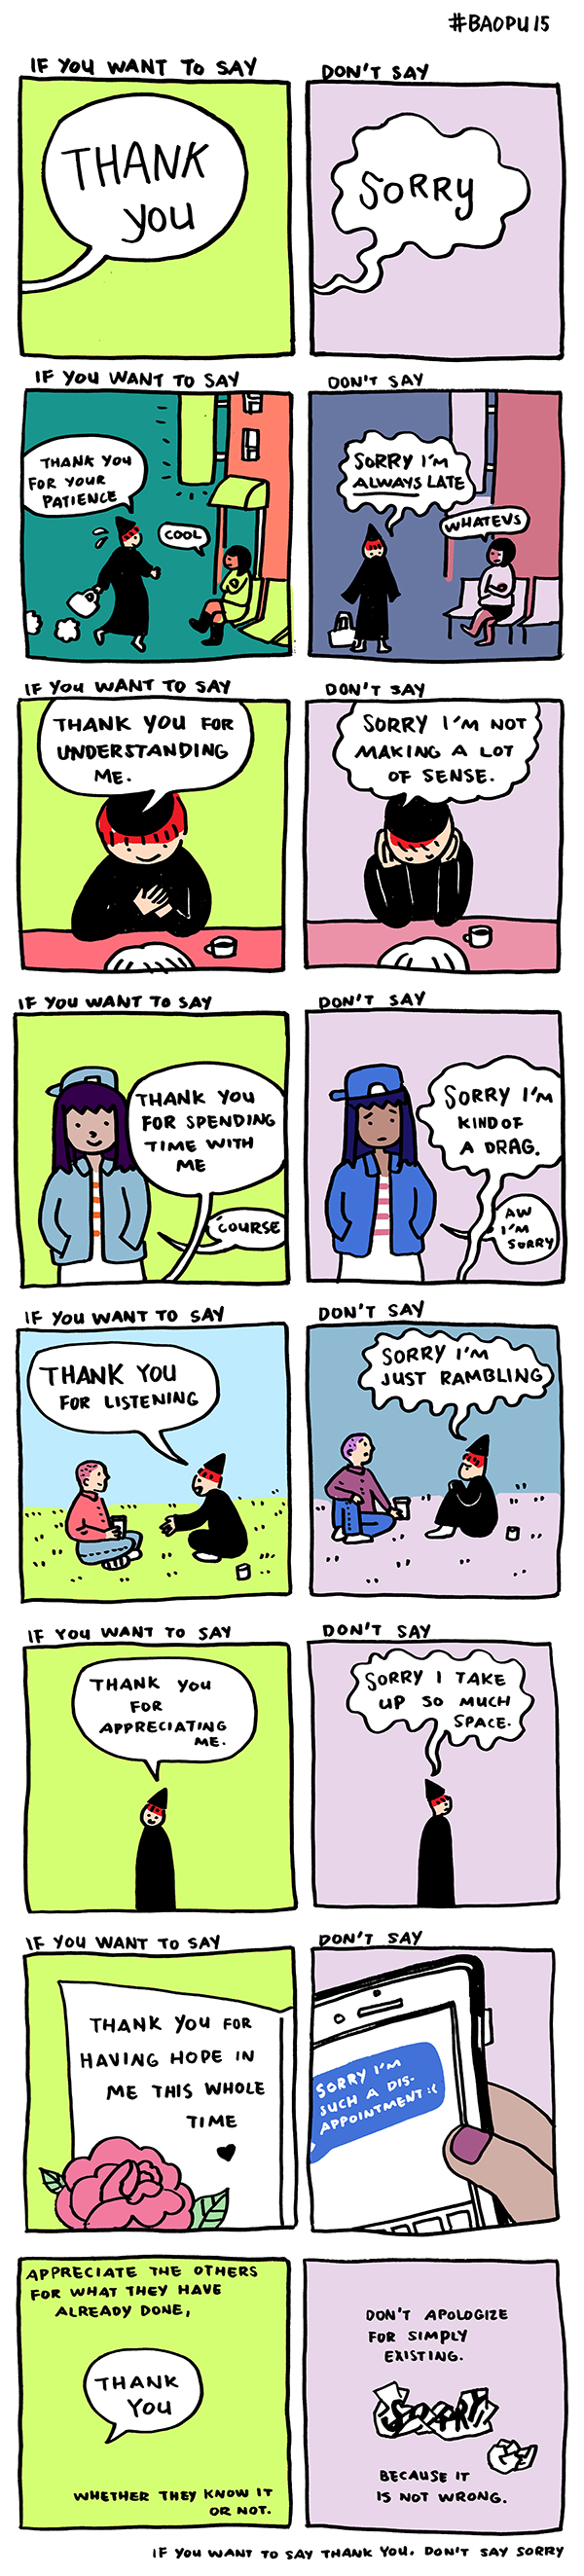 The #MagicWords Conundrum: When To Say Thank You And Not Sorry